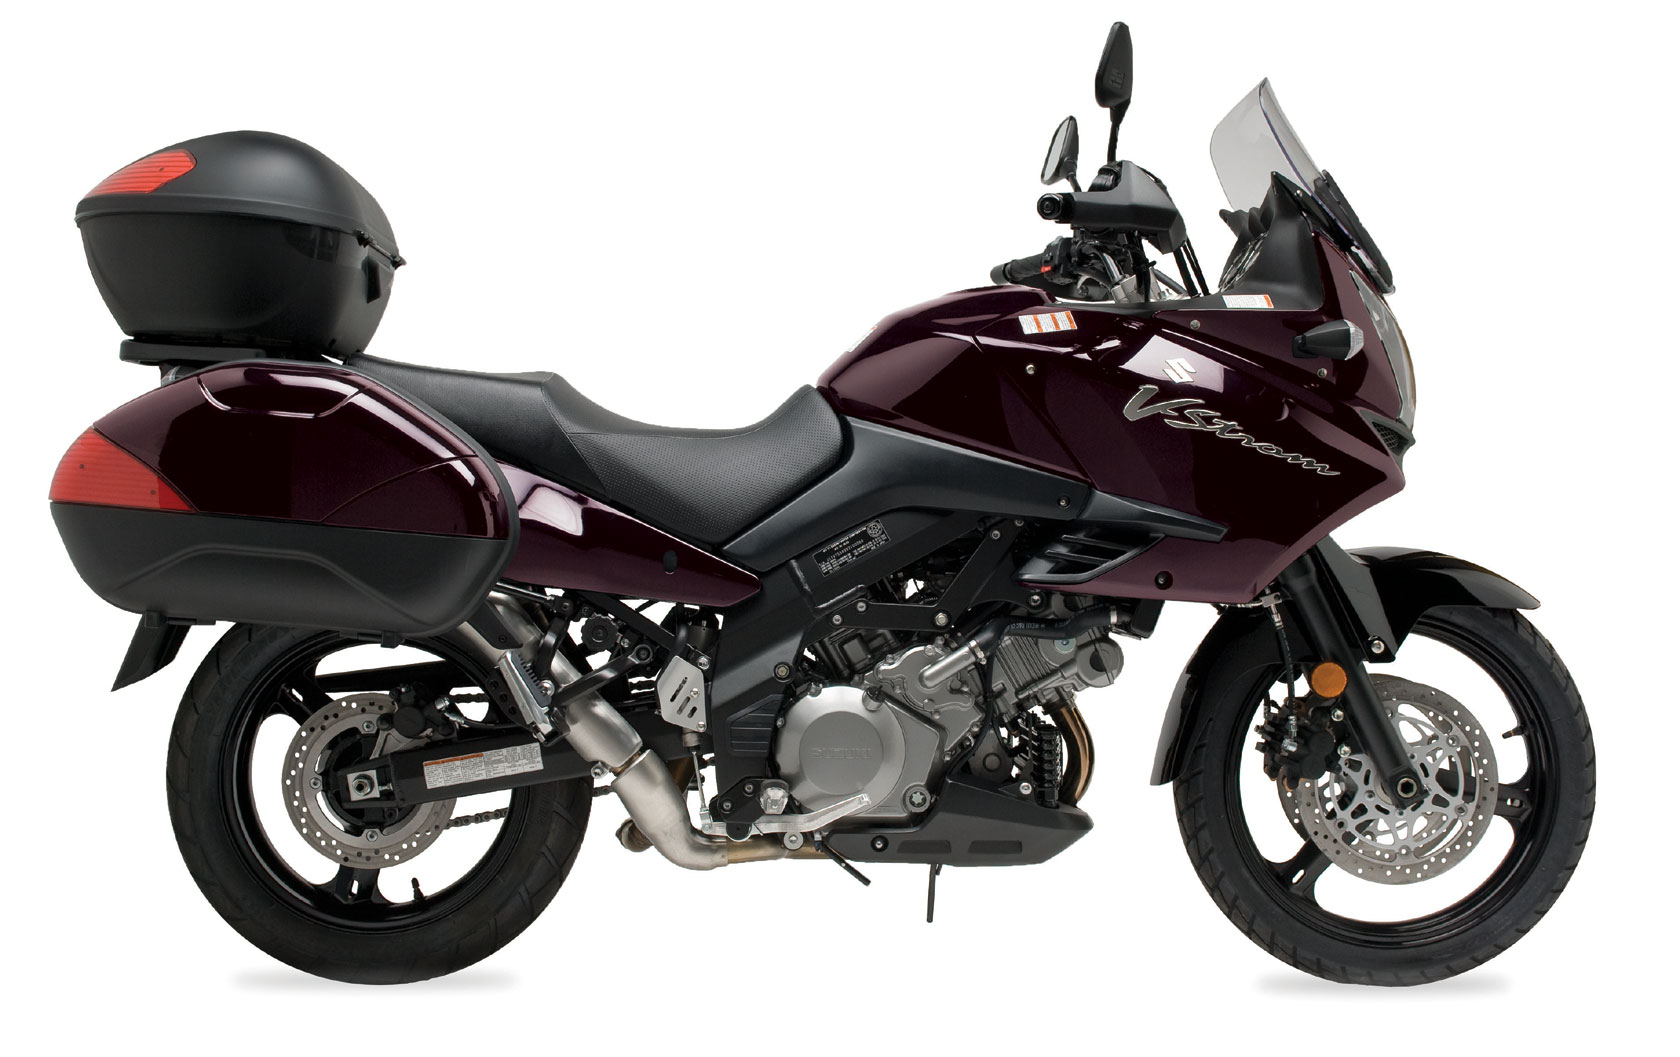 2009 Suzuki DL1000 V-Strom service manual